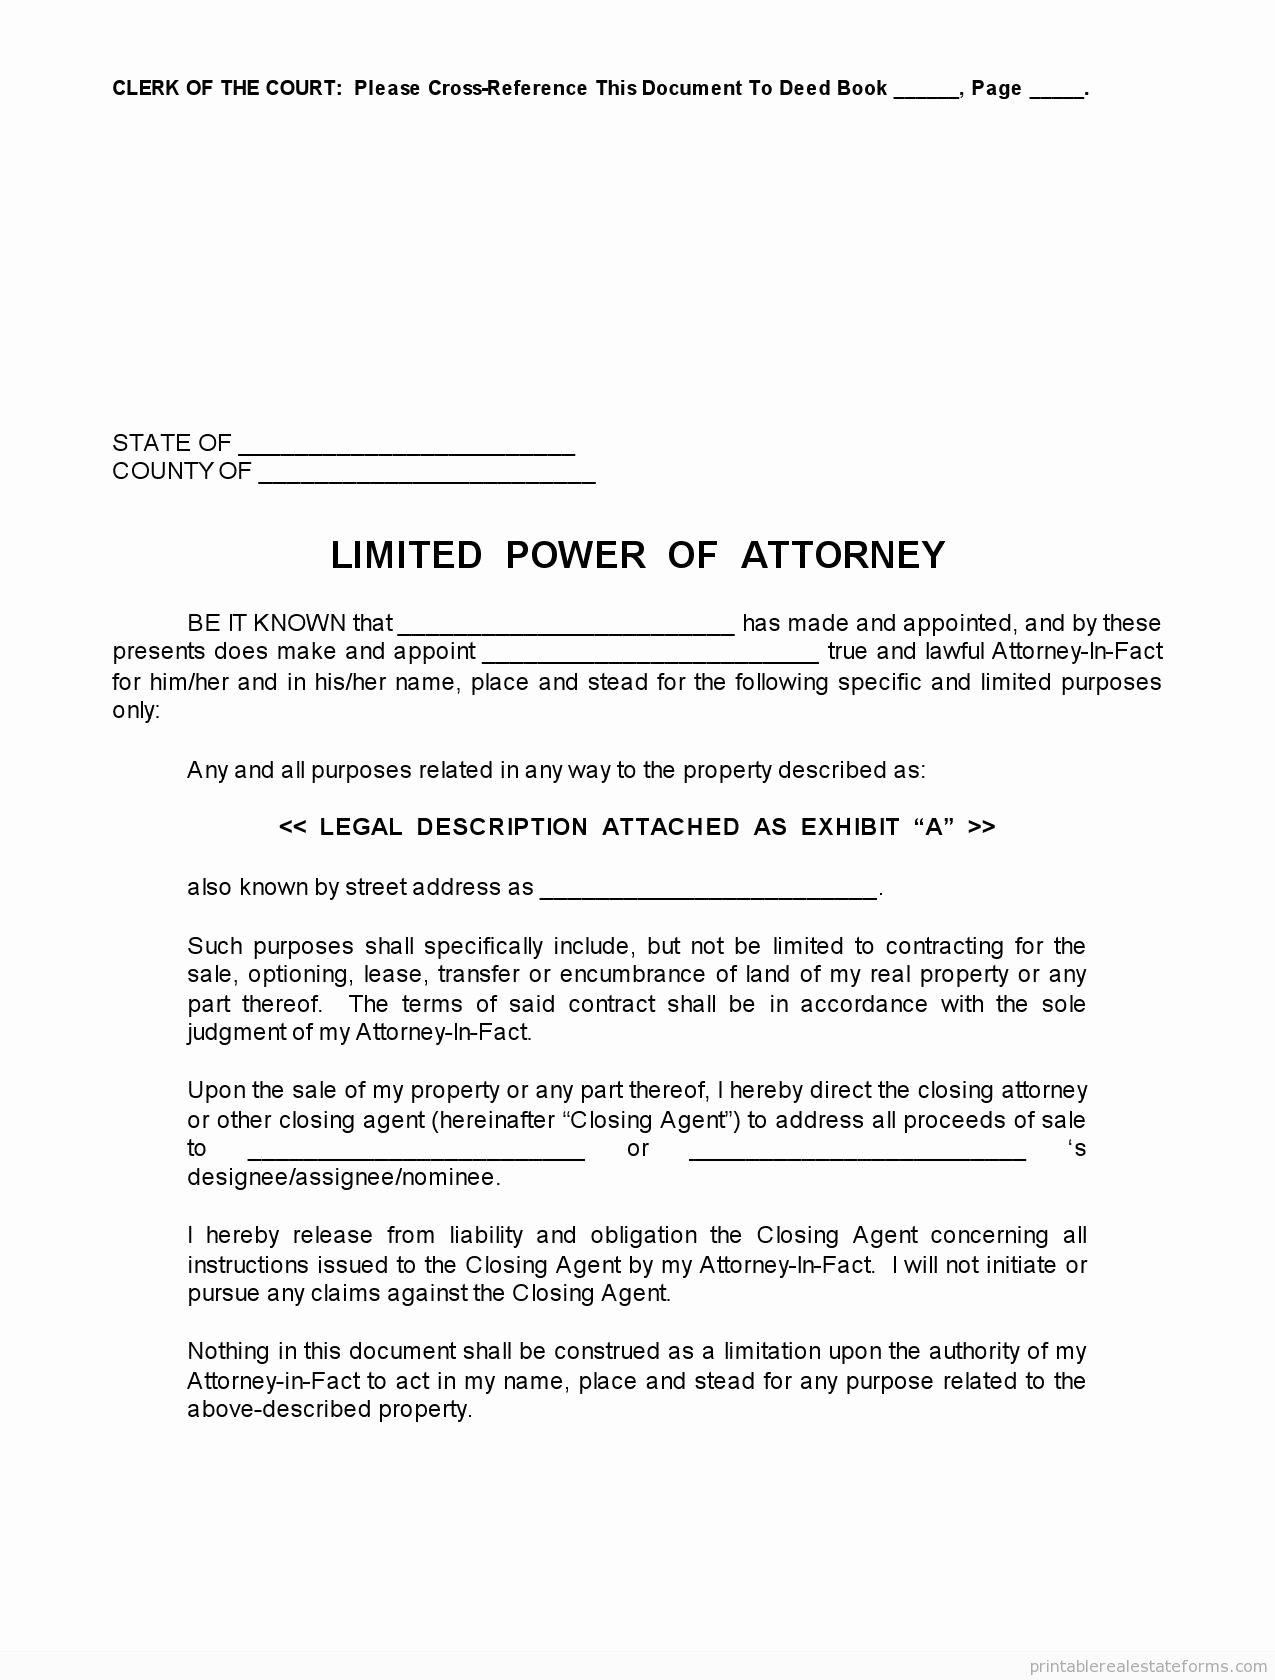 Special Power Of attorney form Fresh Free Printable Limited Power Of attorney forms [sample]